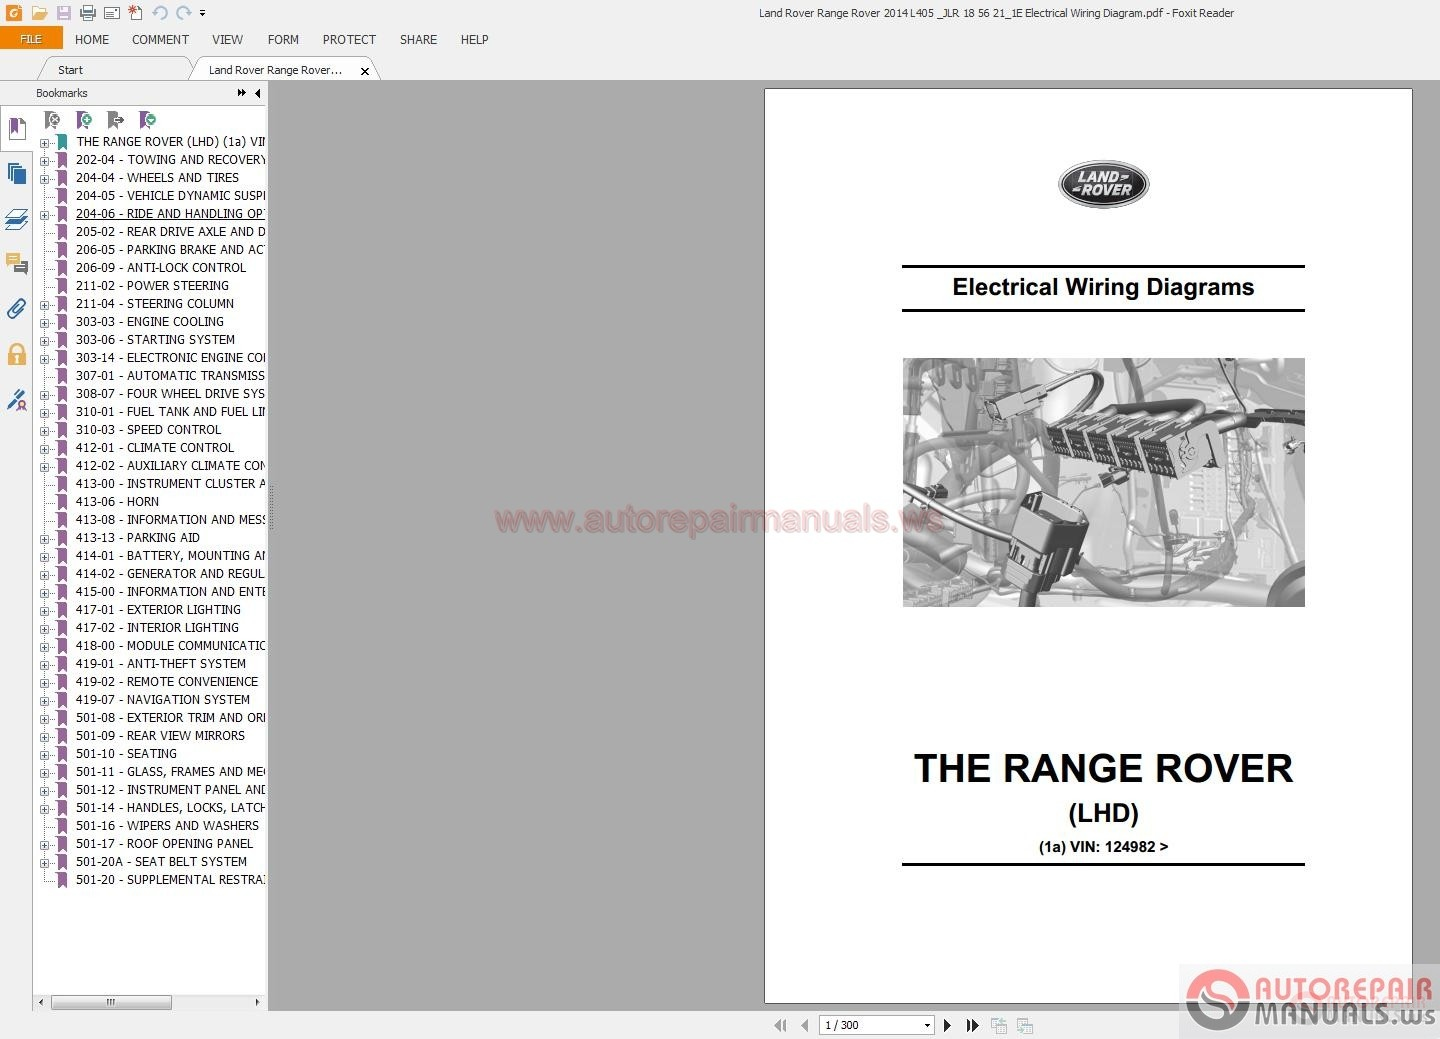 Land Rover Range Nas 2005 Images Of Home Design Wiring Diagram 2014 L405 Jlr 18 56 21 1e Electrical